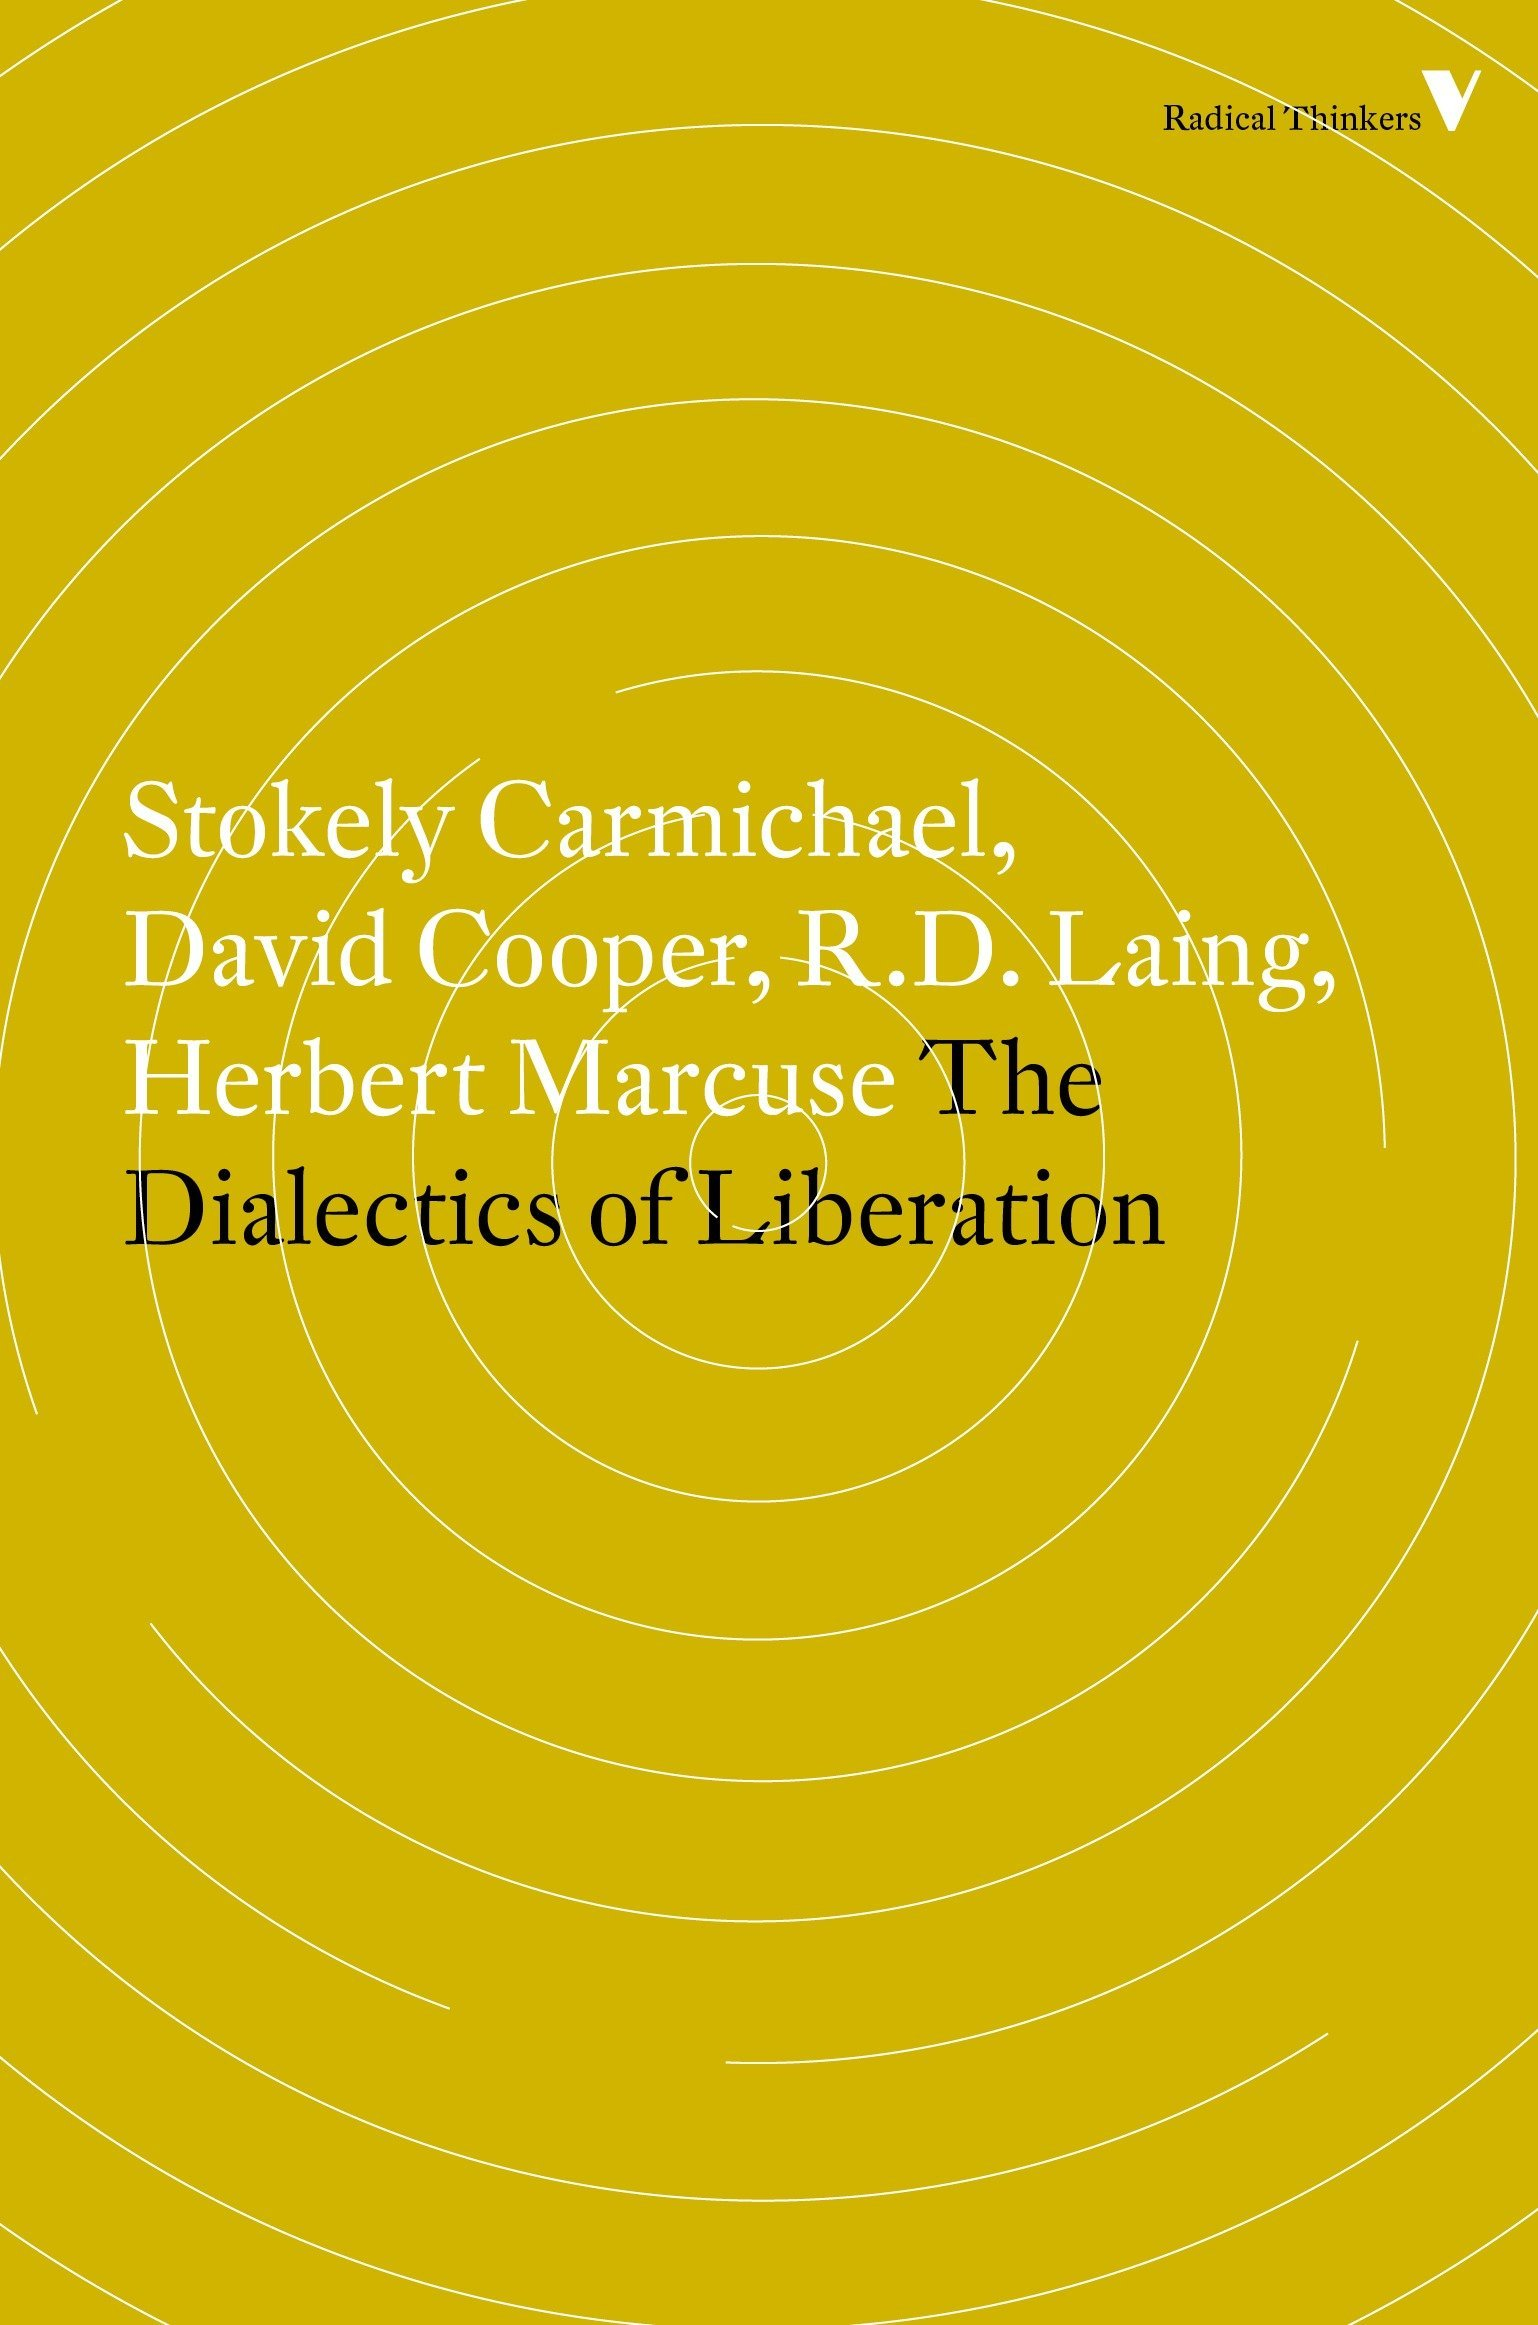 Download The Dialectics of Liberation (Radical Thinkers) ebook